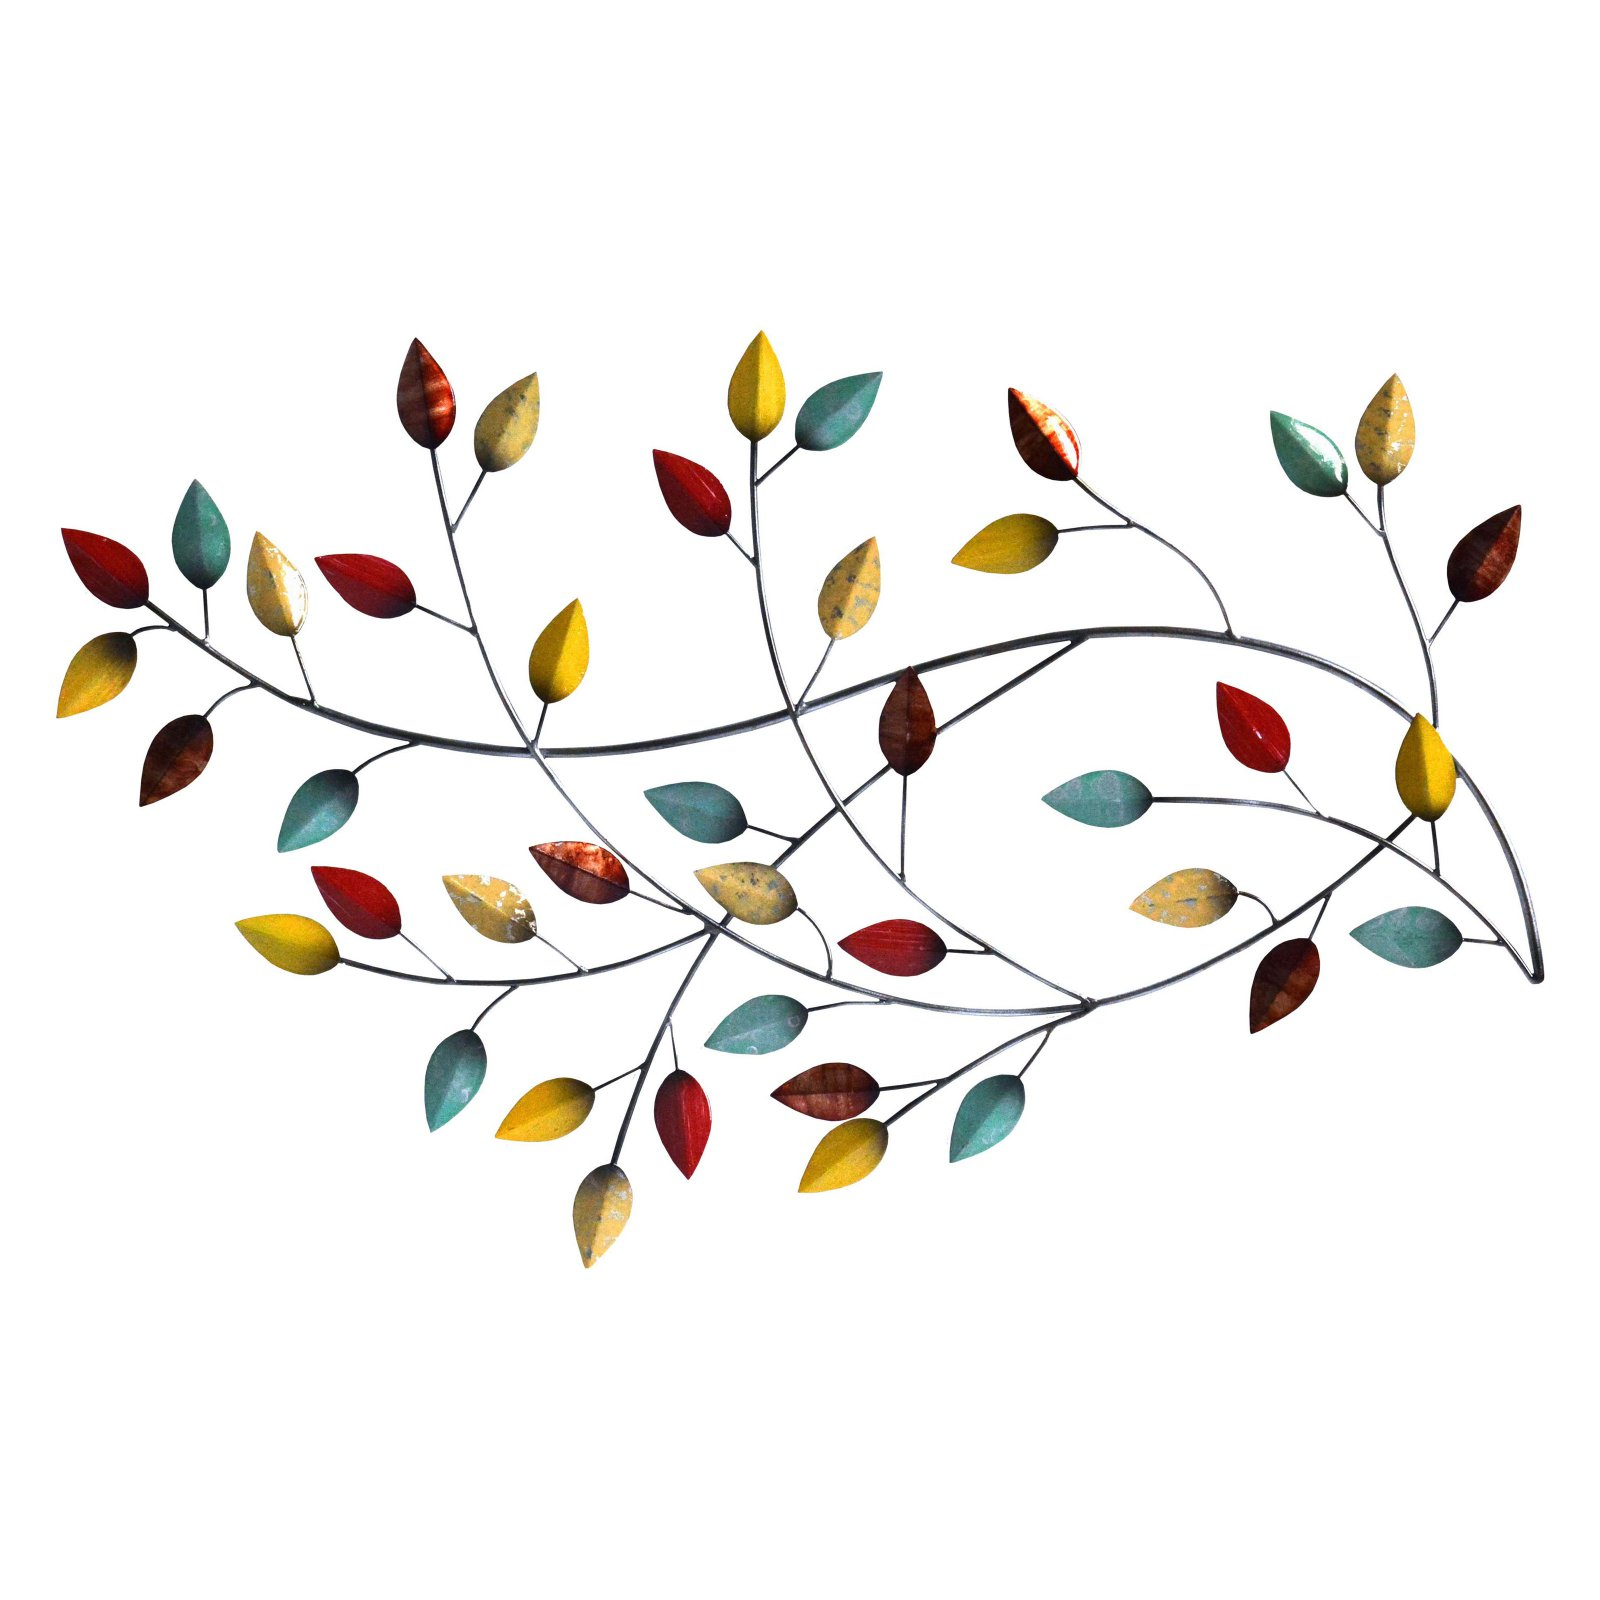 Stratton Home Decor Autumn Blowing Leaves Wall Decor In Blowing Leaves Wall Decor (View 14 of 30)